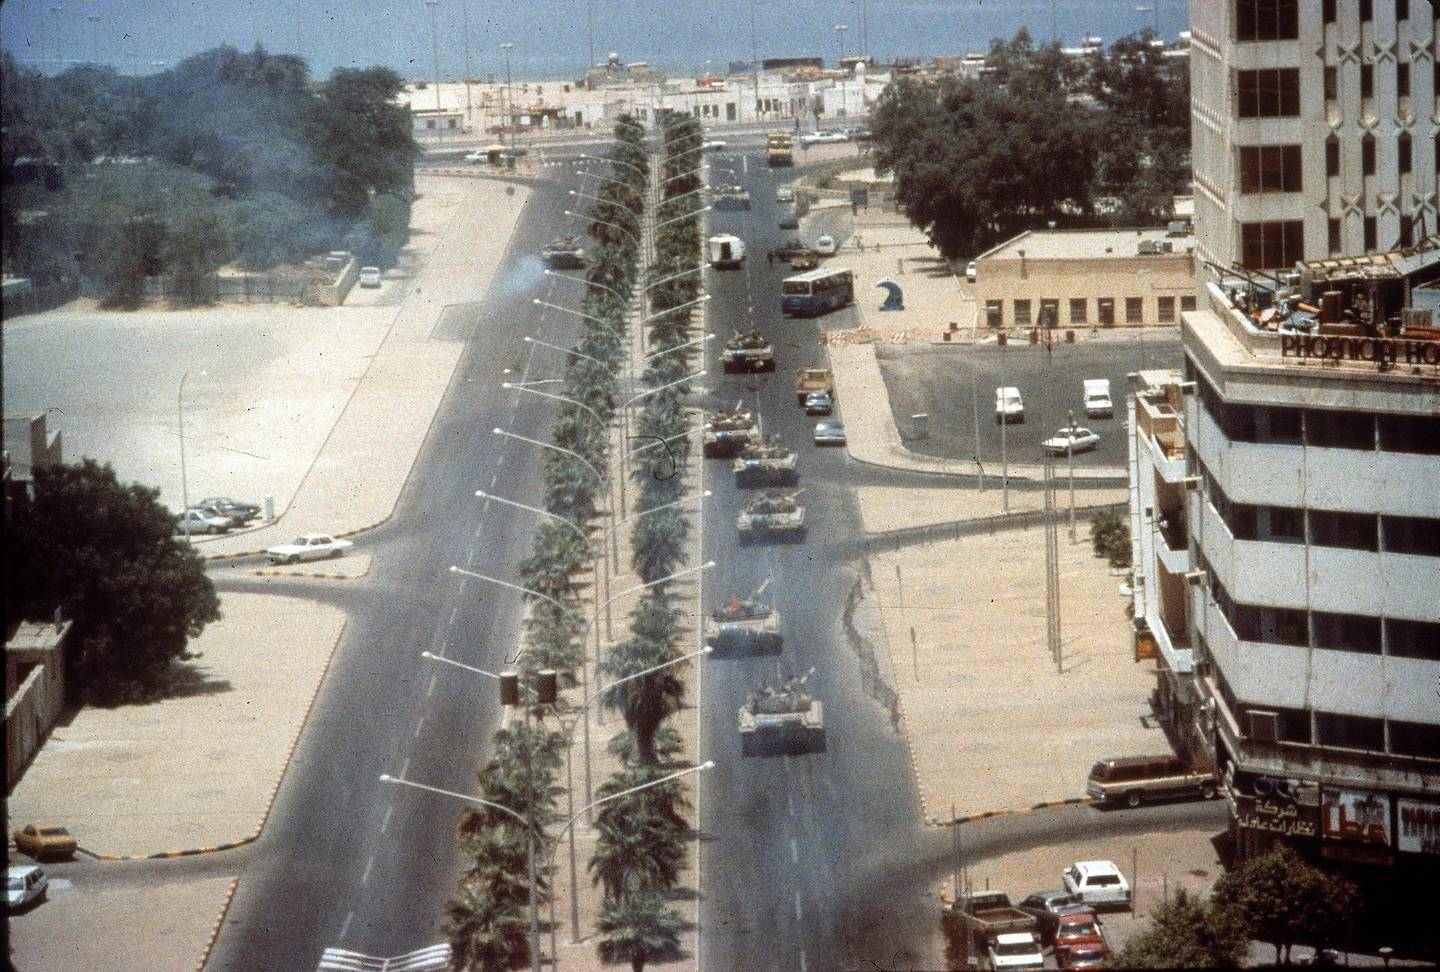 KUWAIT CITY, KUWAIT - AUGUST 02:  Iraqi tanks rolling through broad boulevard during invasion of Kuwait City, Kuwait.  (Photo by Time Life Pictures/The LIFE Images Collection via Getty Images/Getty Images)